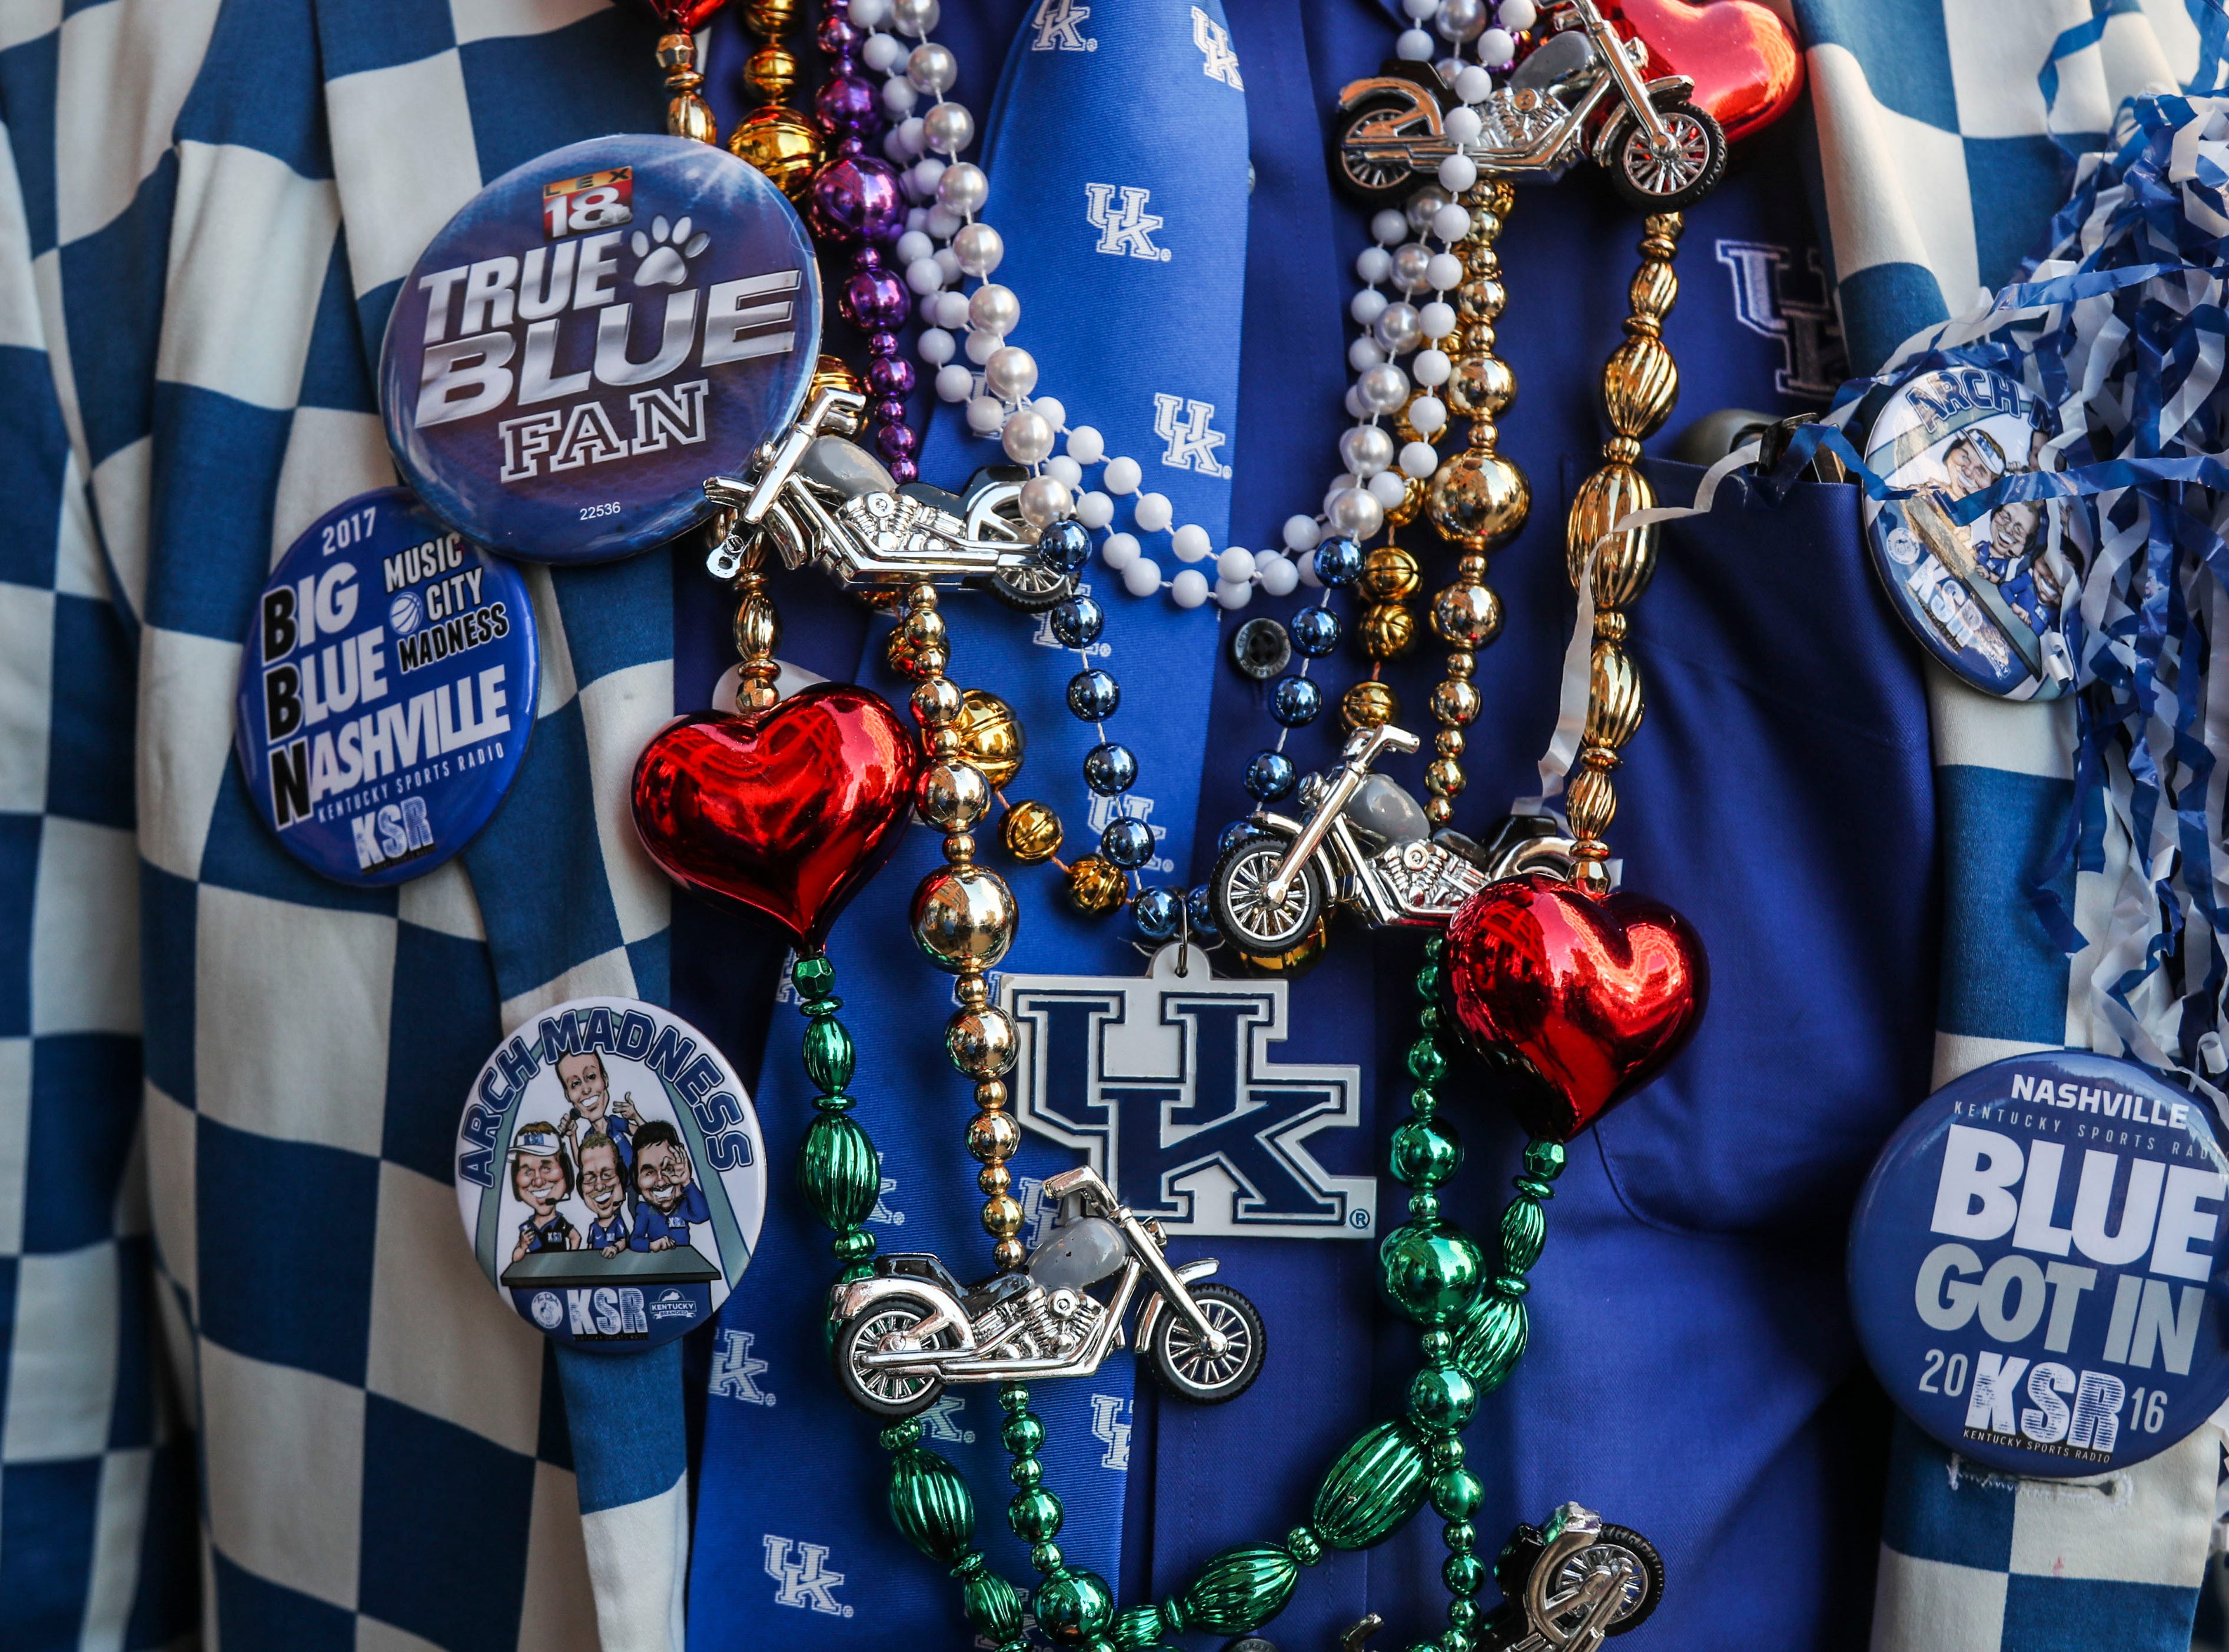 Kentucky fan Keith Lowery of Pilot Oak, Ky. wore a checkerboard blue-and-white suit while greeting fellow Wildcat fans before the Champions Classic Tuesday night in Indianapolis.